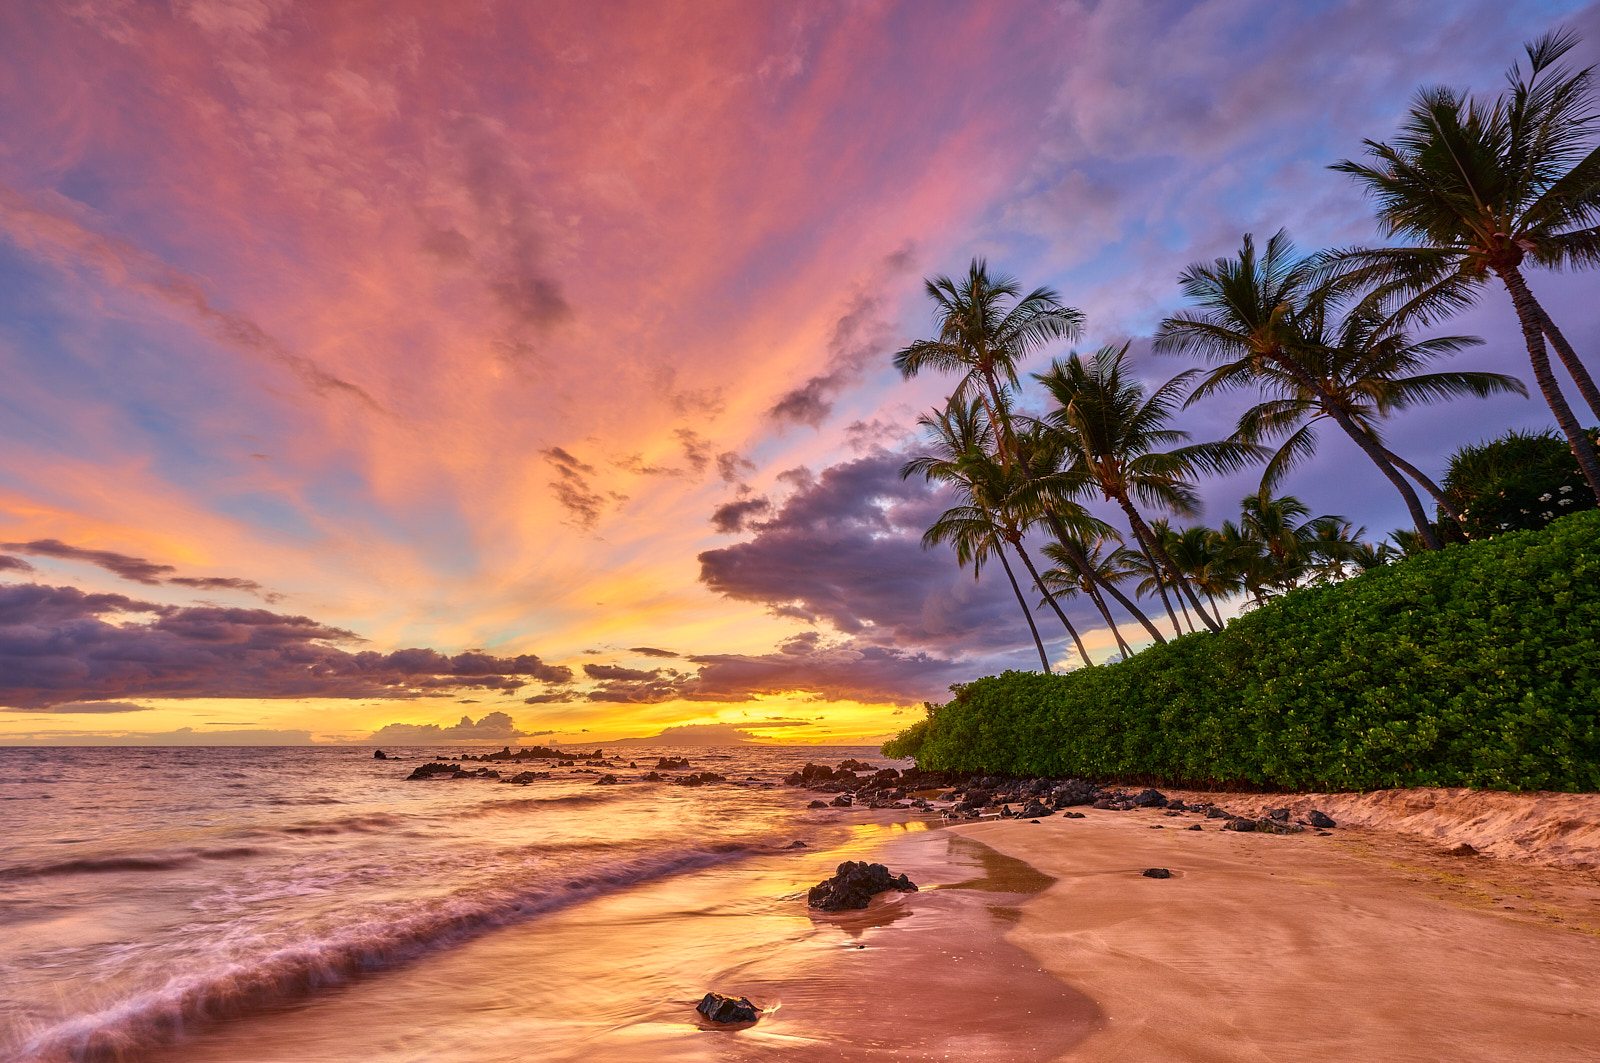 Another classic south Maui sunset at White Rock (Palauea) in Wailea highlighted by vibrant pink and purple colors